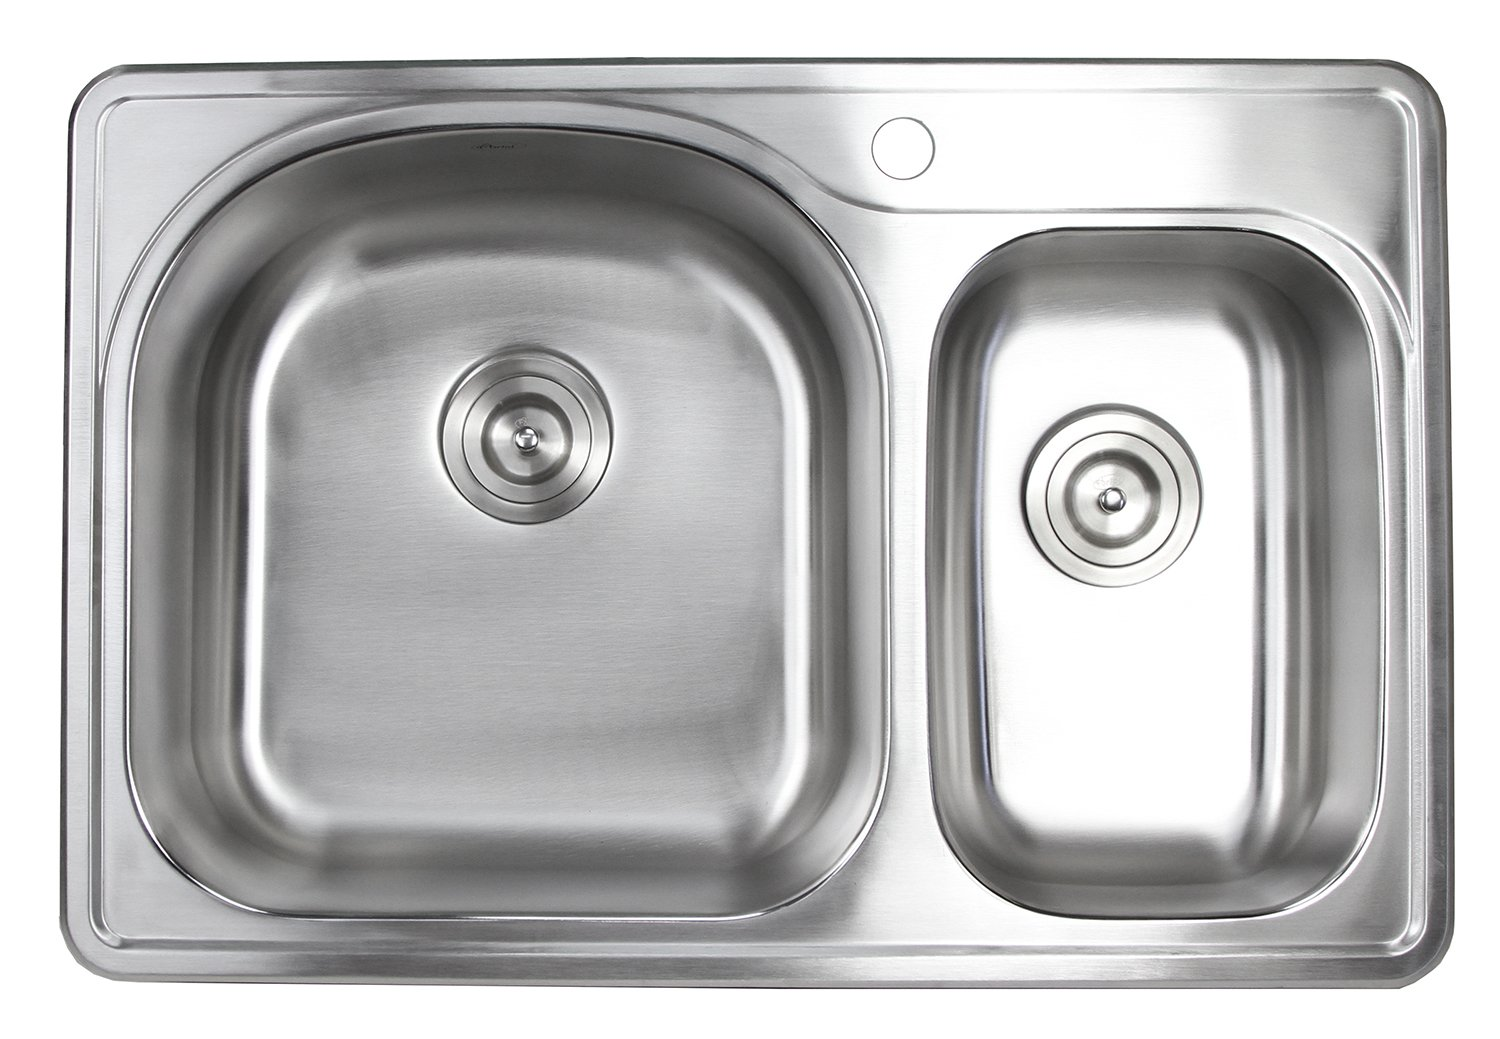 33 Inch Top-mount/Drop-in Stainless Steel 70/30 Double Bowl Kitchen Sink- 18 Gauge (1 Faucet Hole)